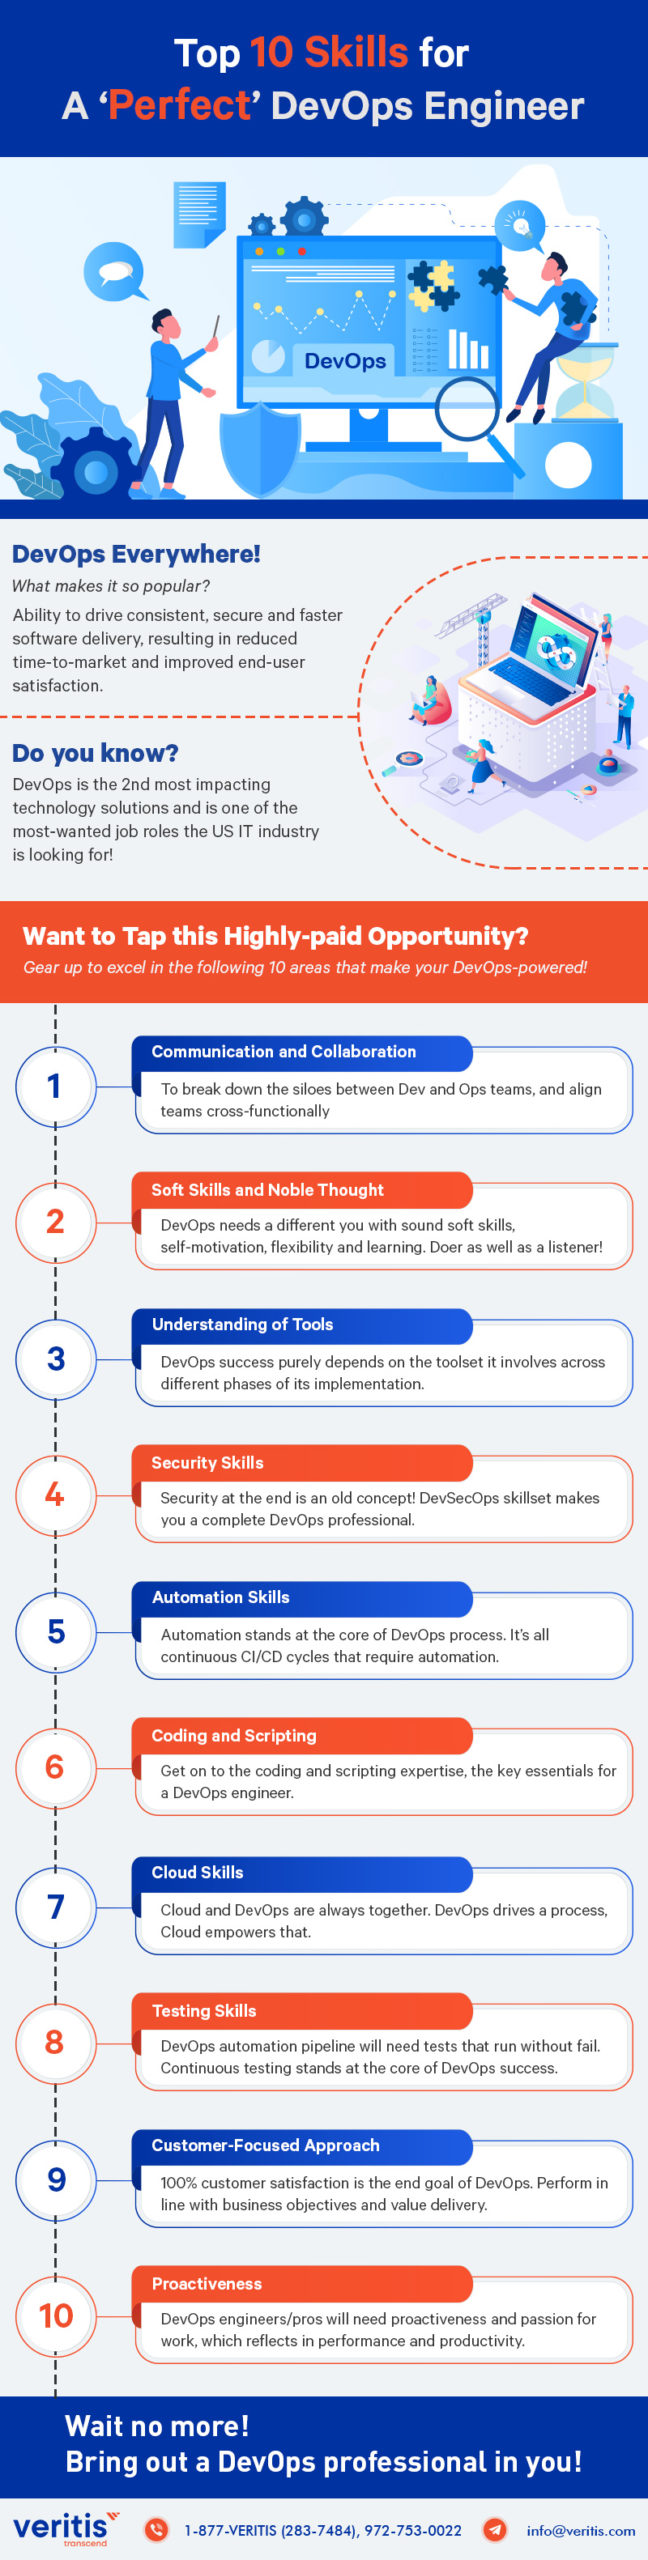 Top 10 Engineer Skills To Become DevOps Powered Infographic